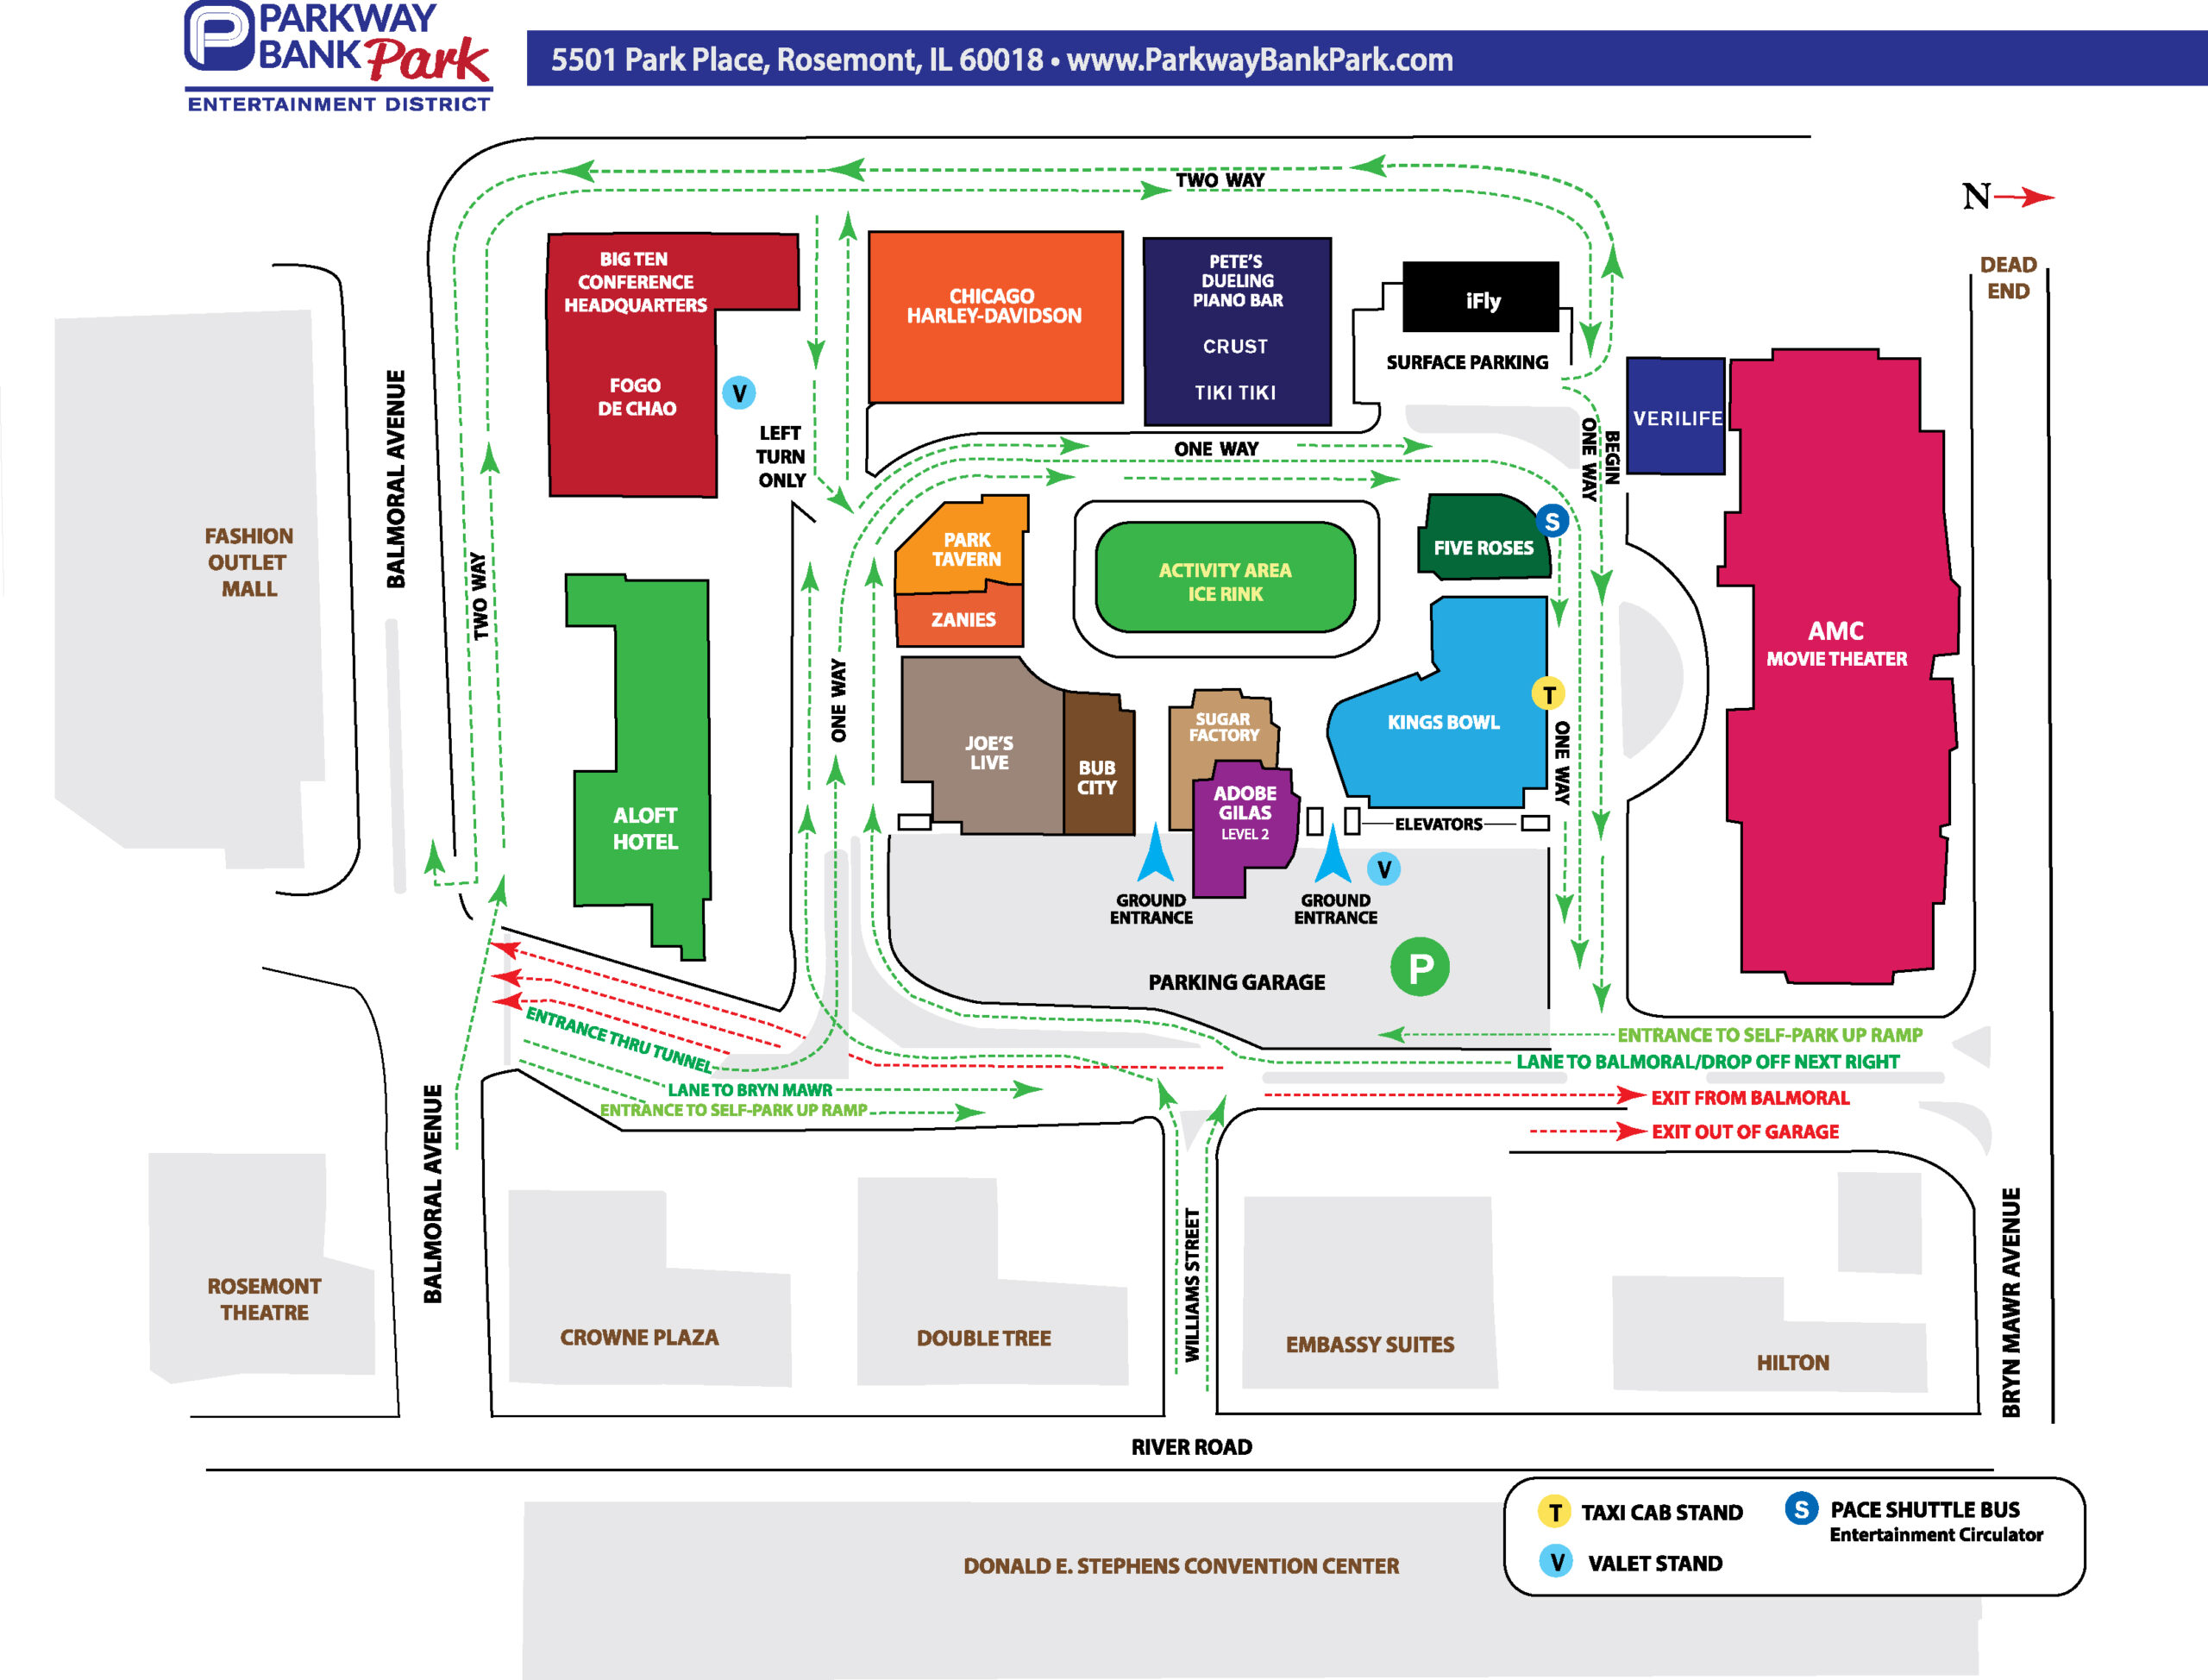 PWB Park area W HOTELS MAP 2021